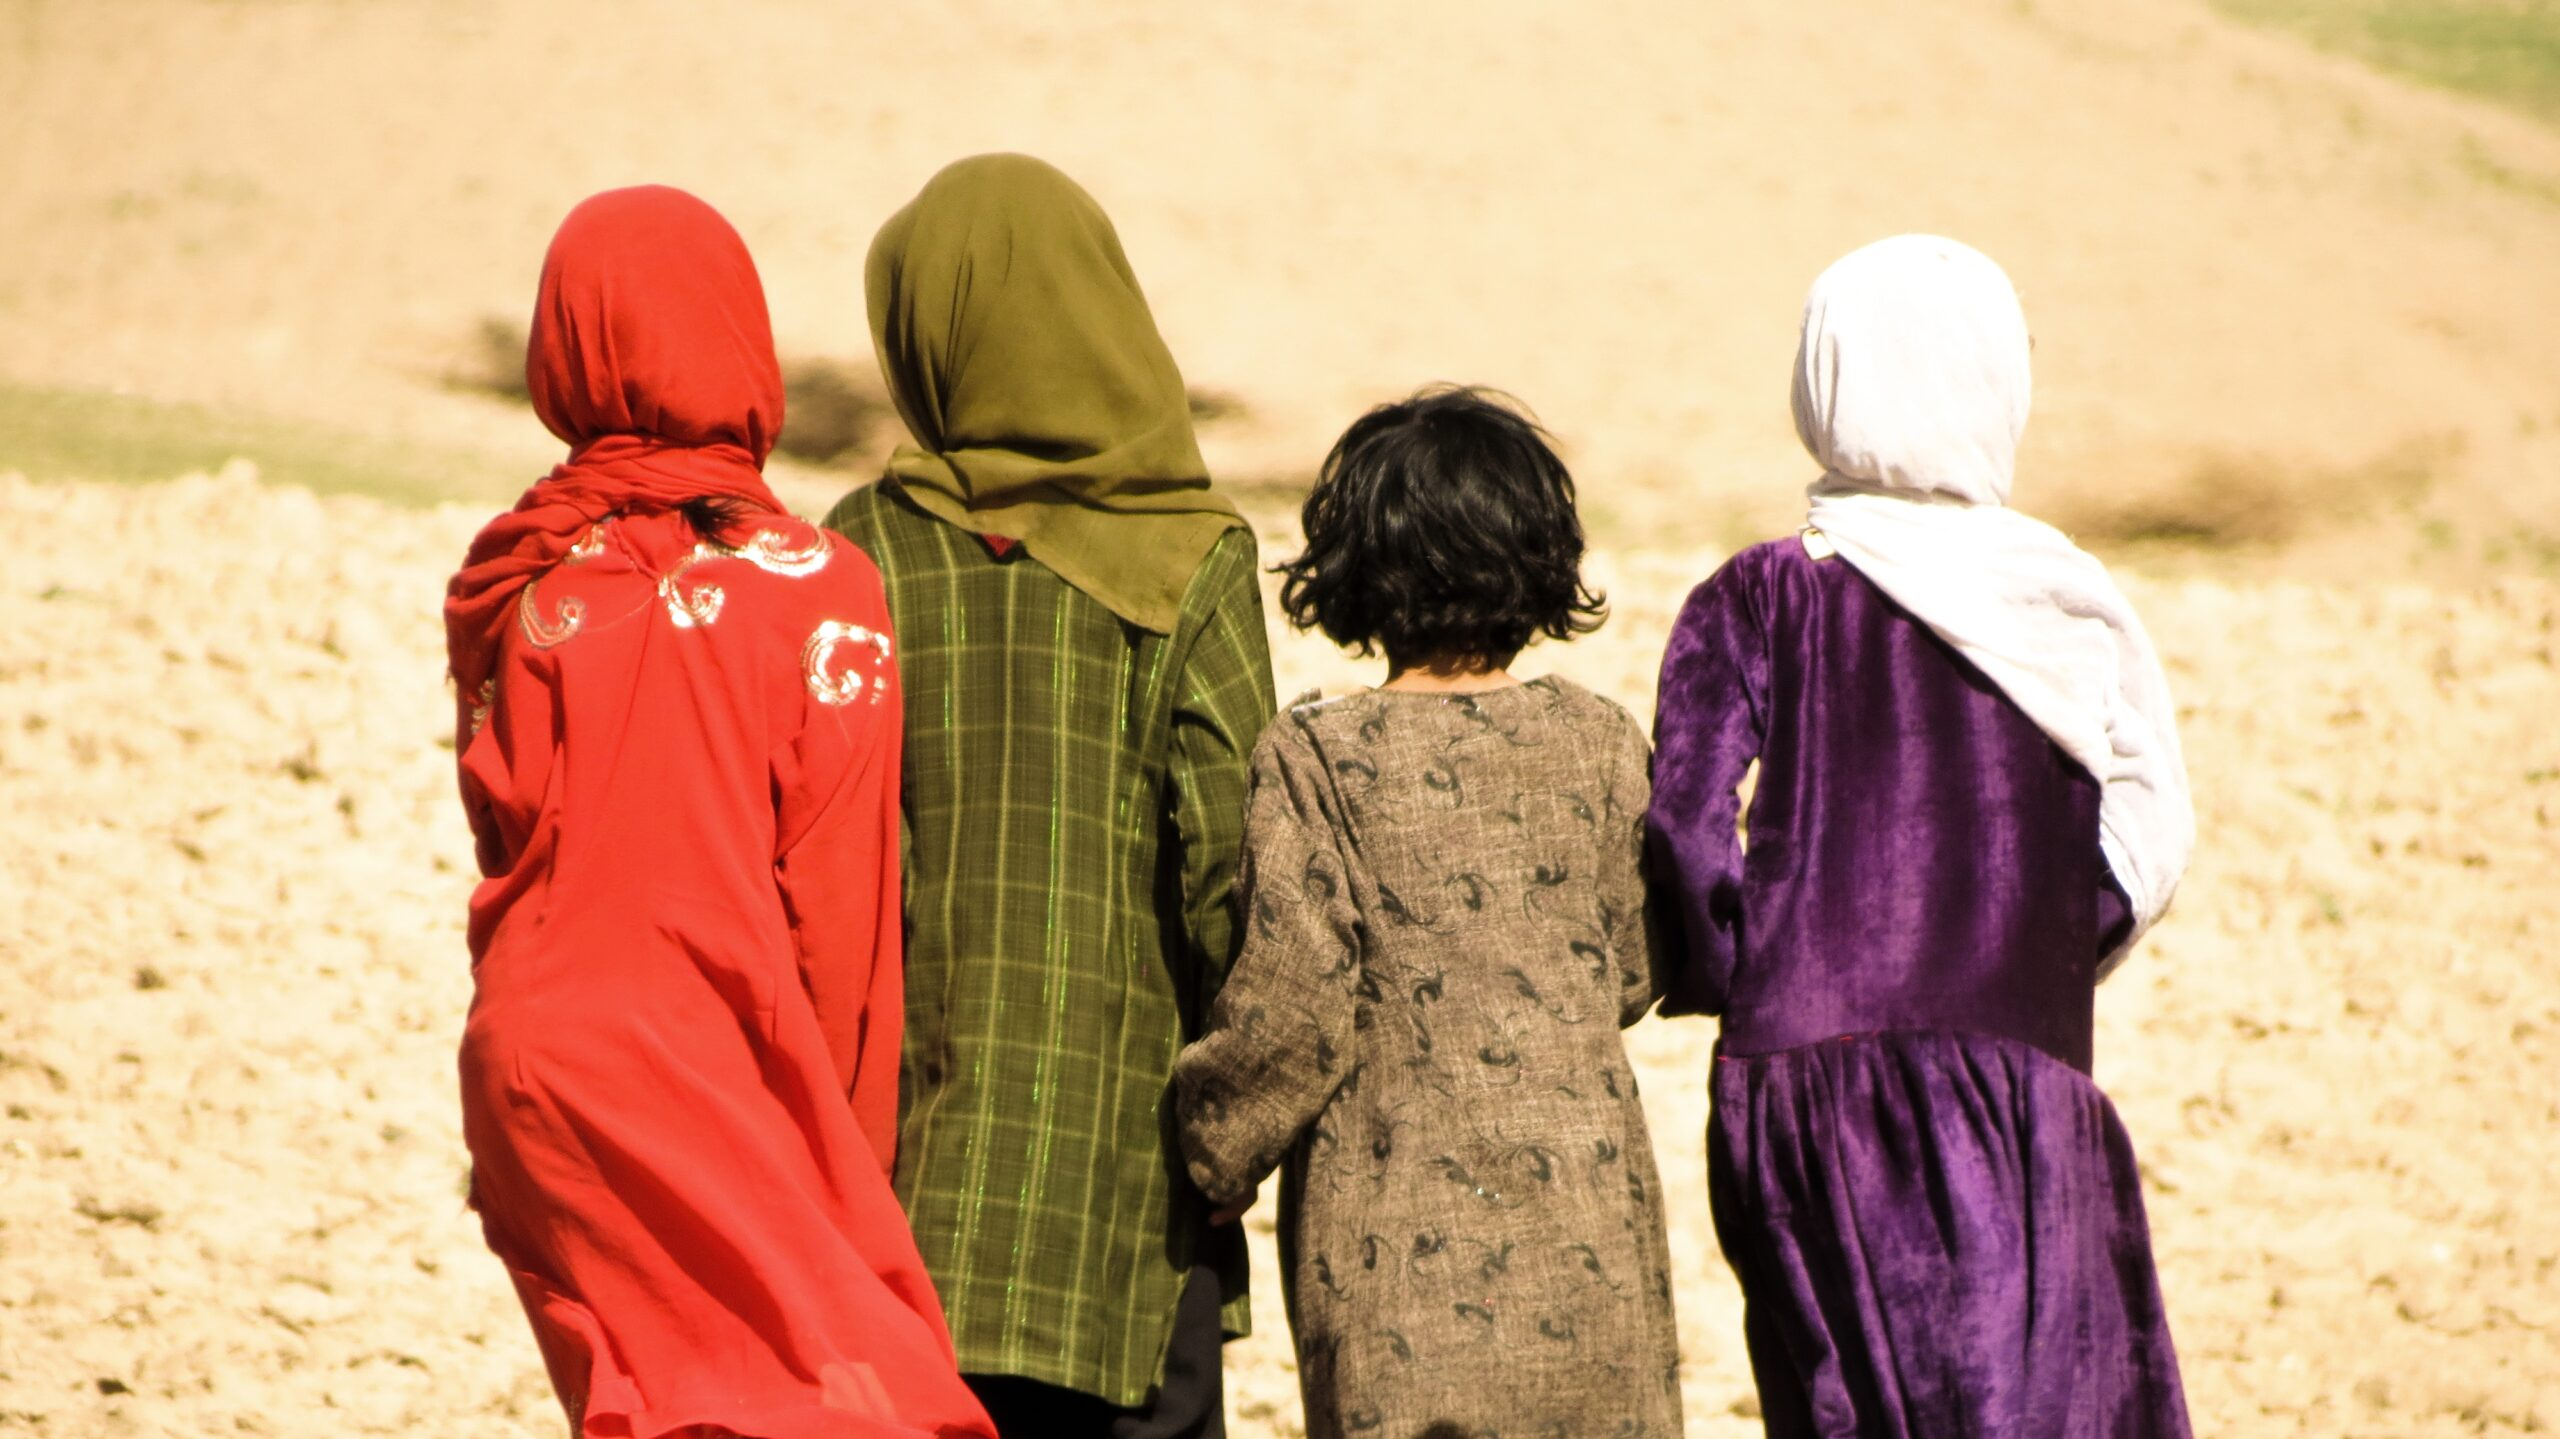 Chagcharan, Afghanistan - August 25, 2012: Four Afghanistan girls walking in the mountains.